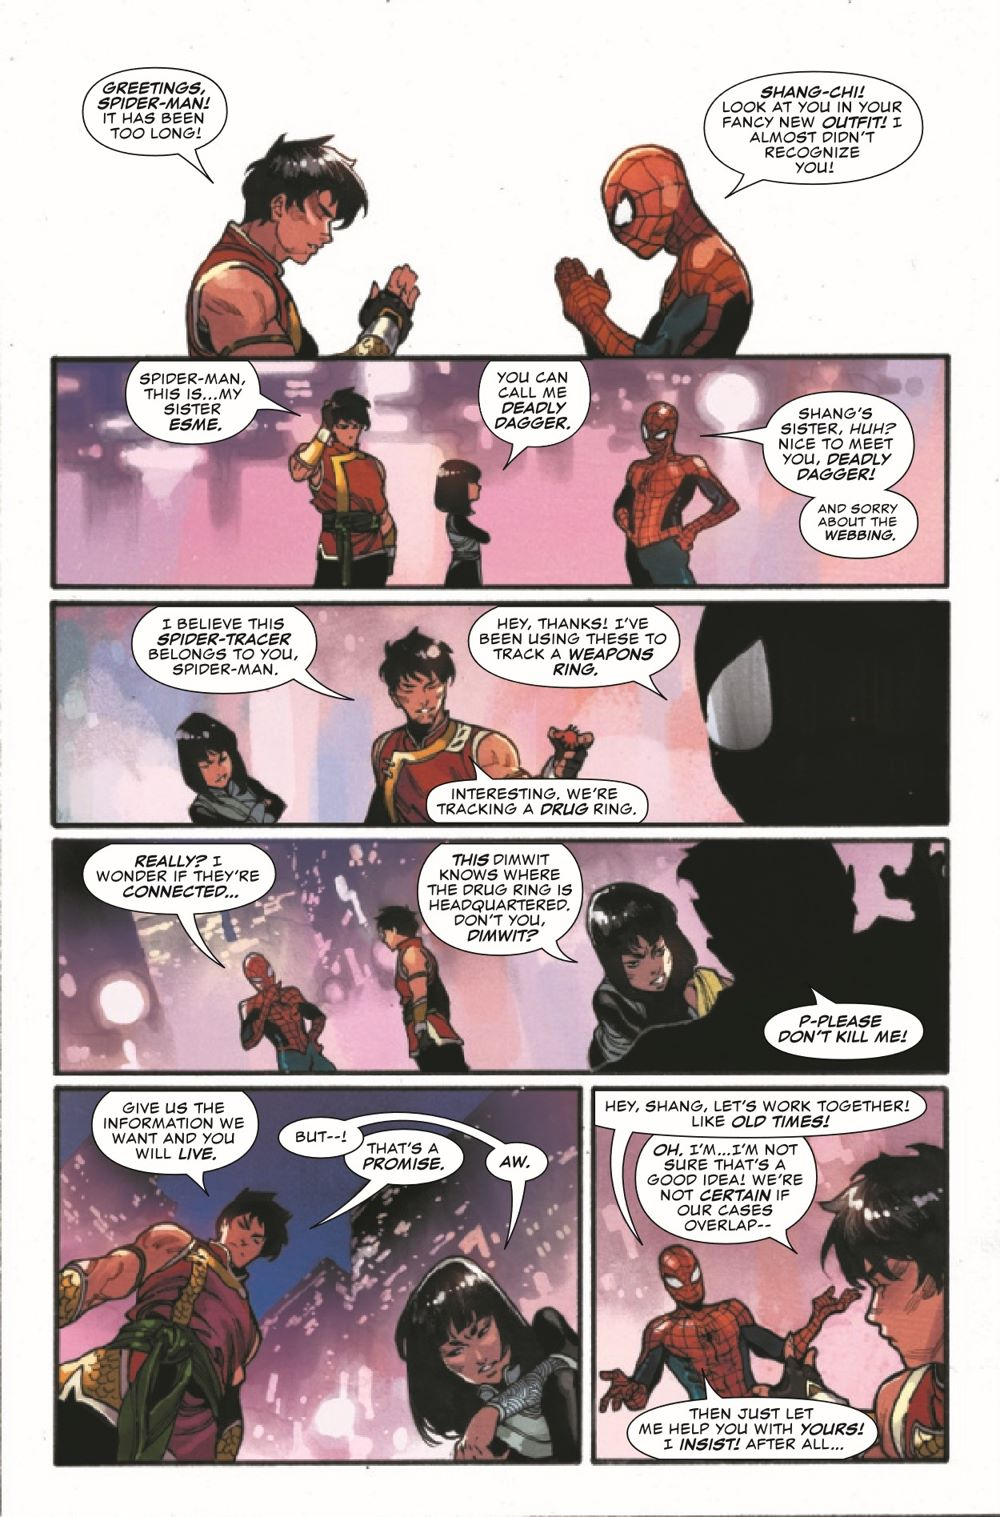 SHANGCHI2021001_Preview-6 ComicList Previews: SHANG-CHI #1